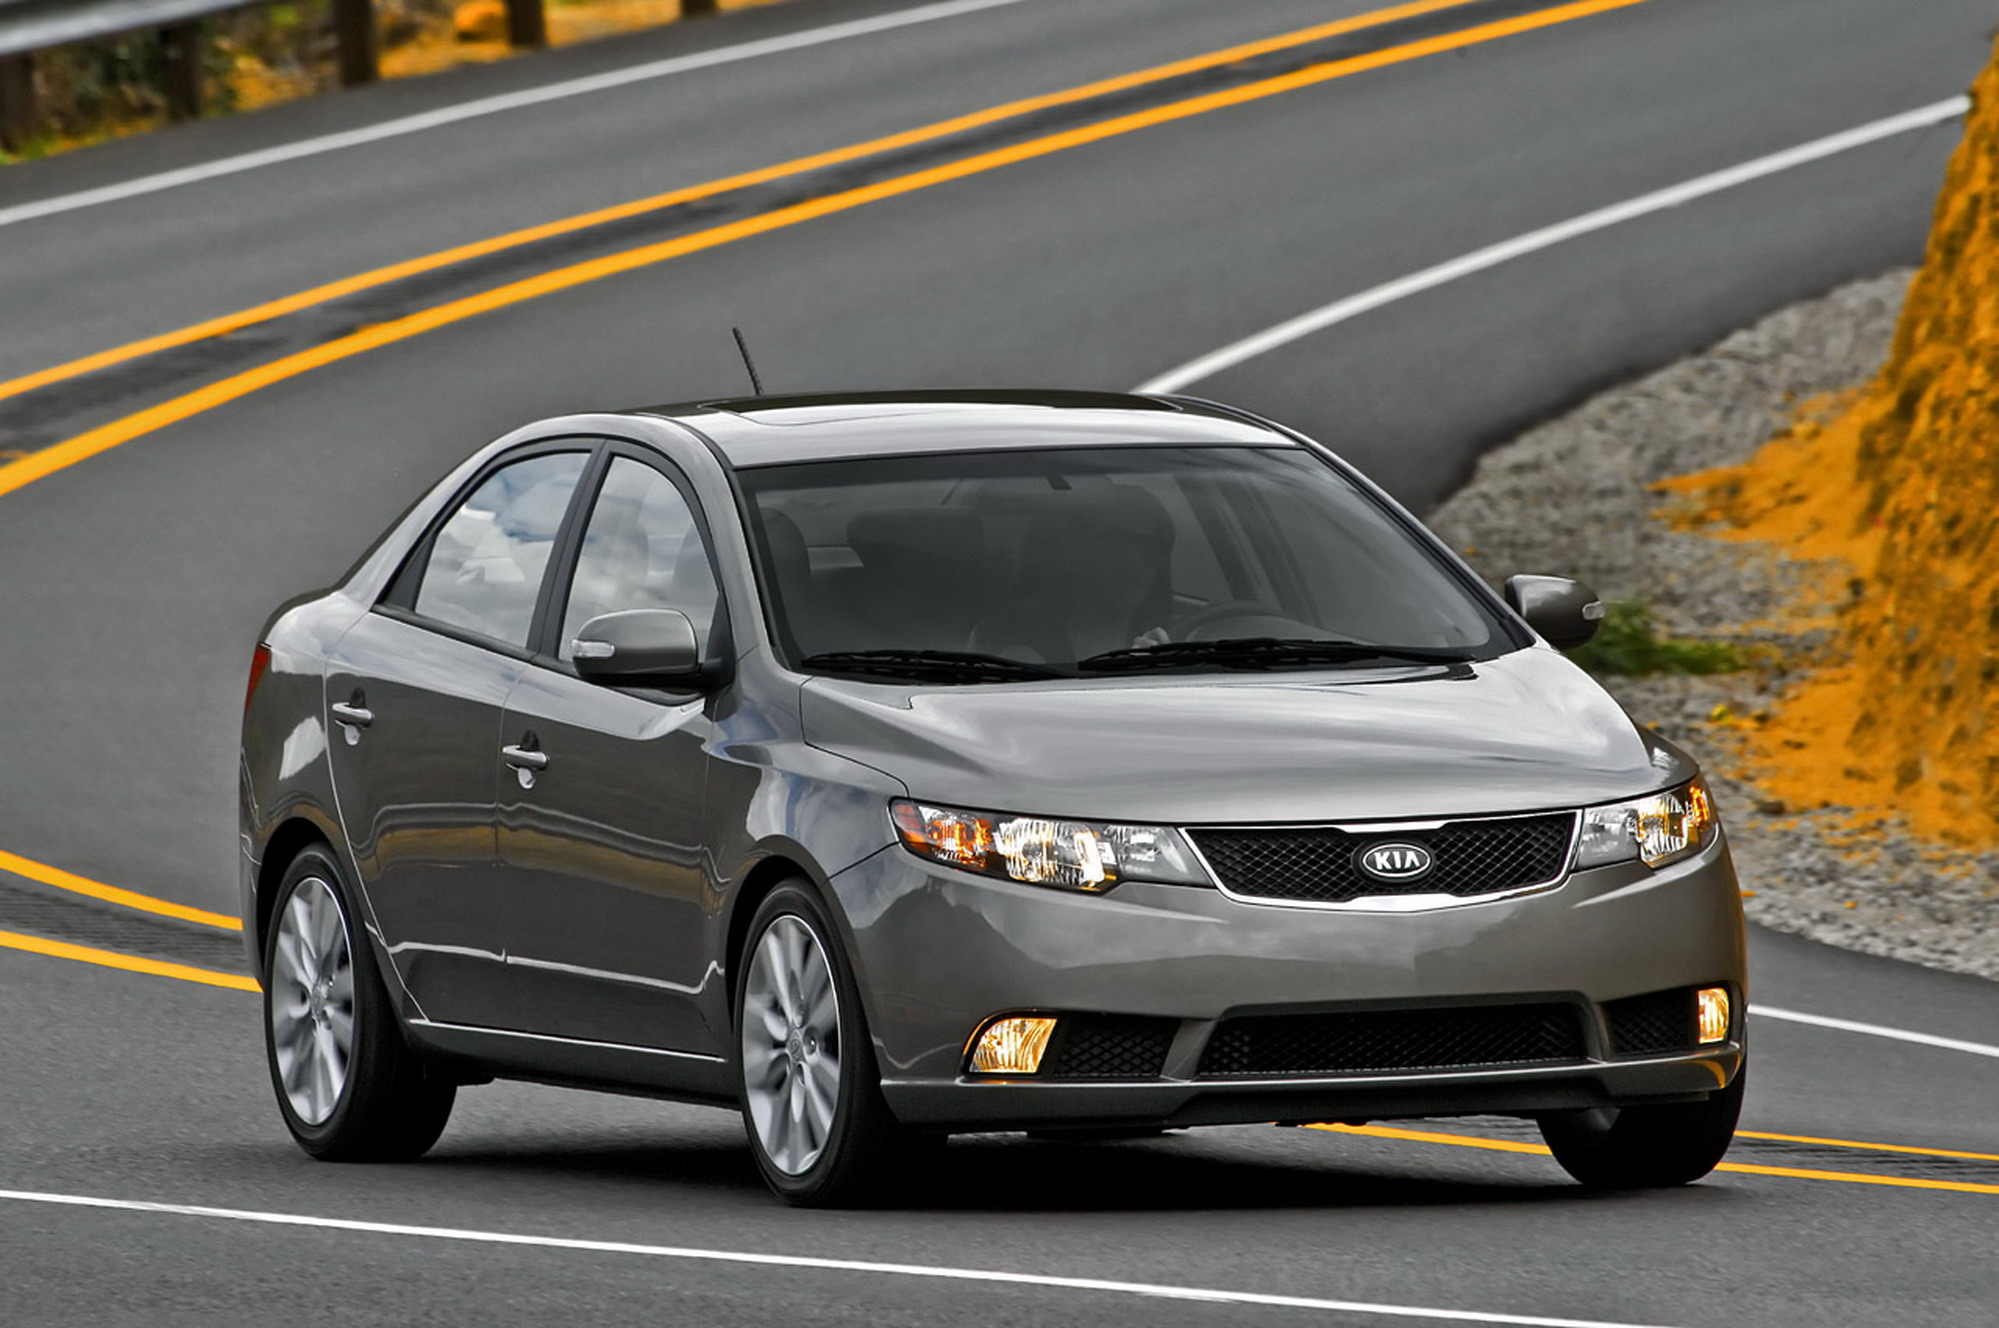 kia motors launched the kia forte mid 2008 to replace the kia cerato